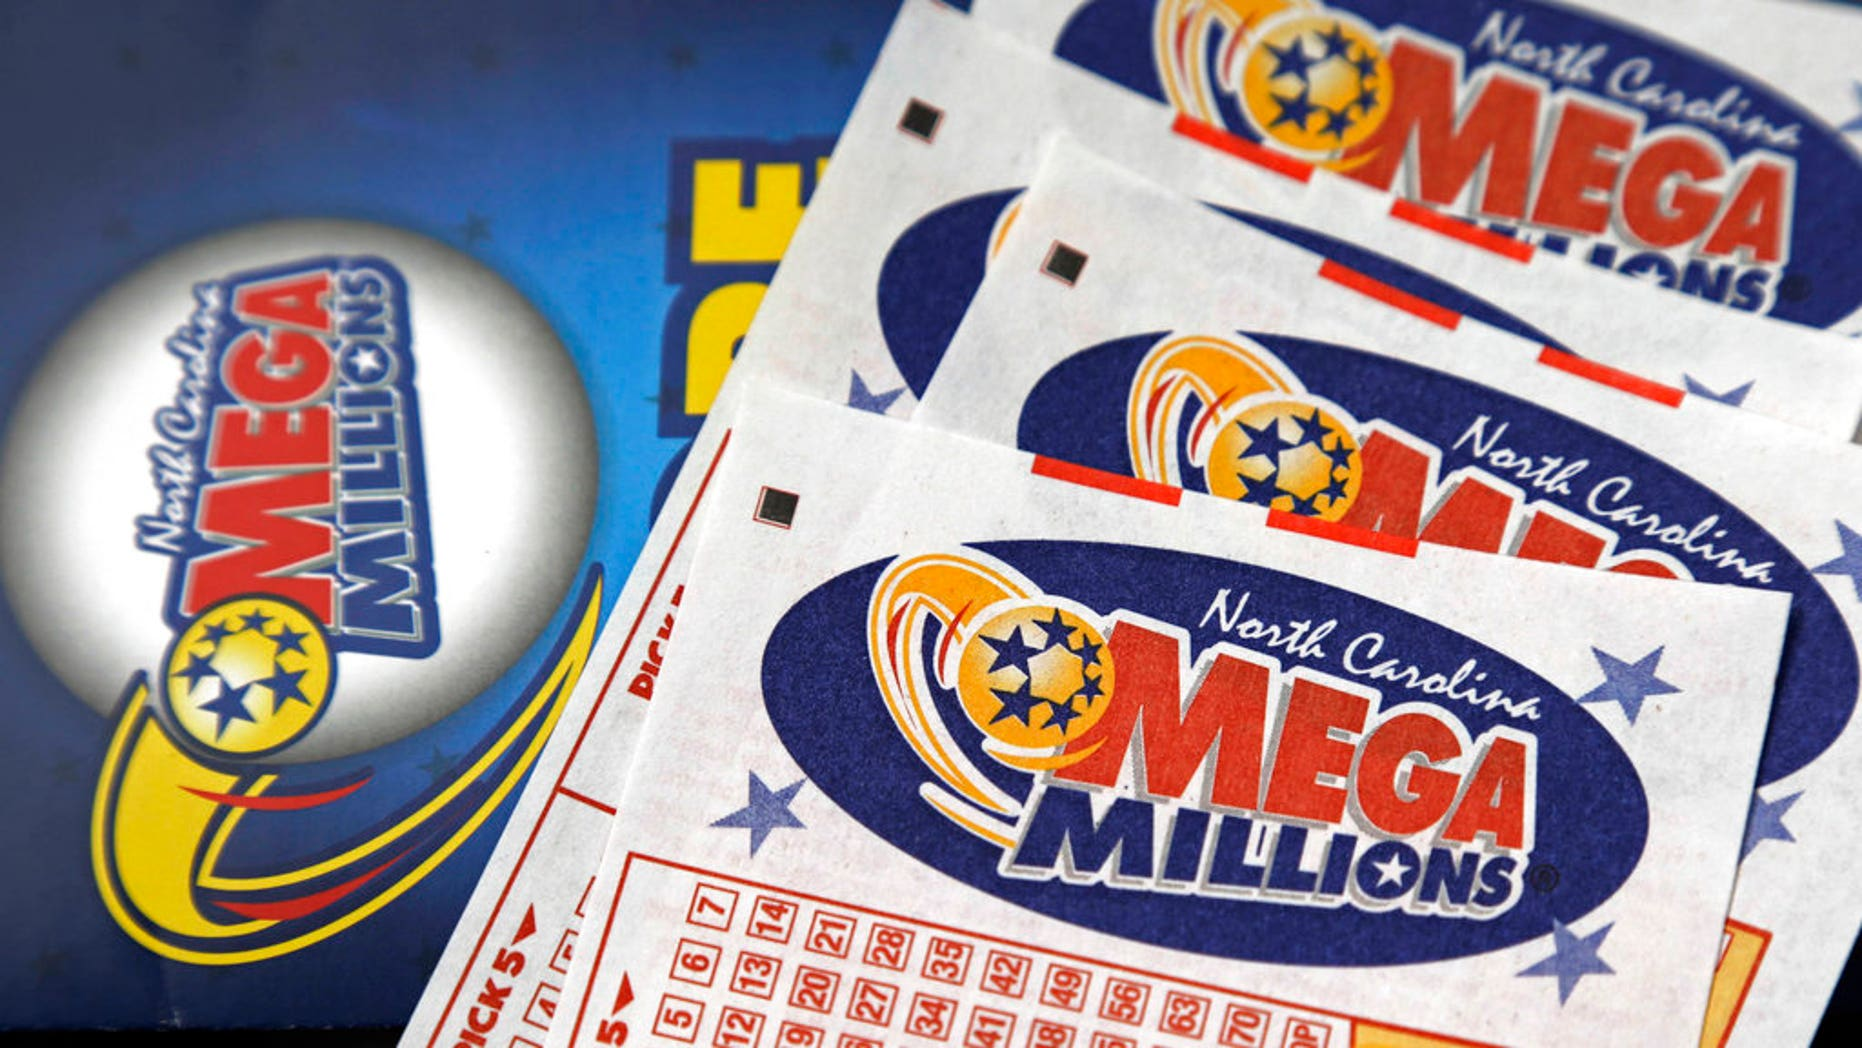 The numbers for the value of the Mega Millions Tuesday are worth $ 172 million. (Photograph AP / Gerry Broome, File)